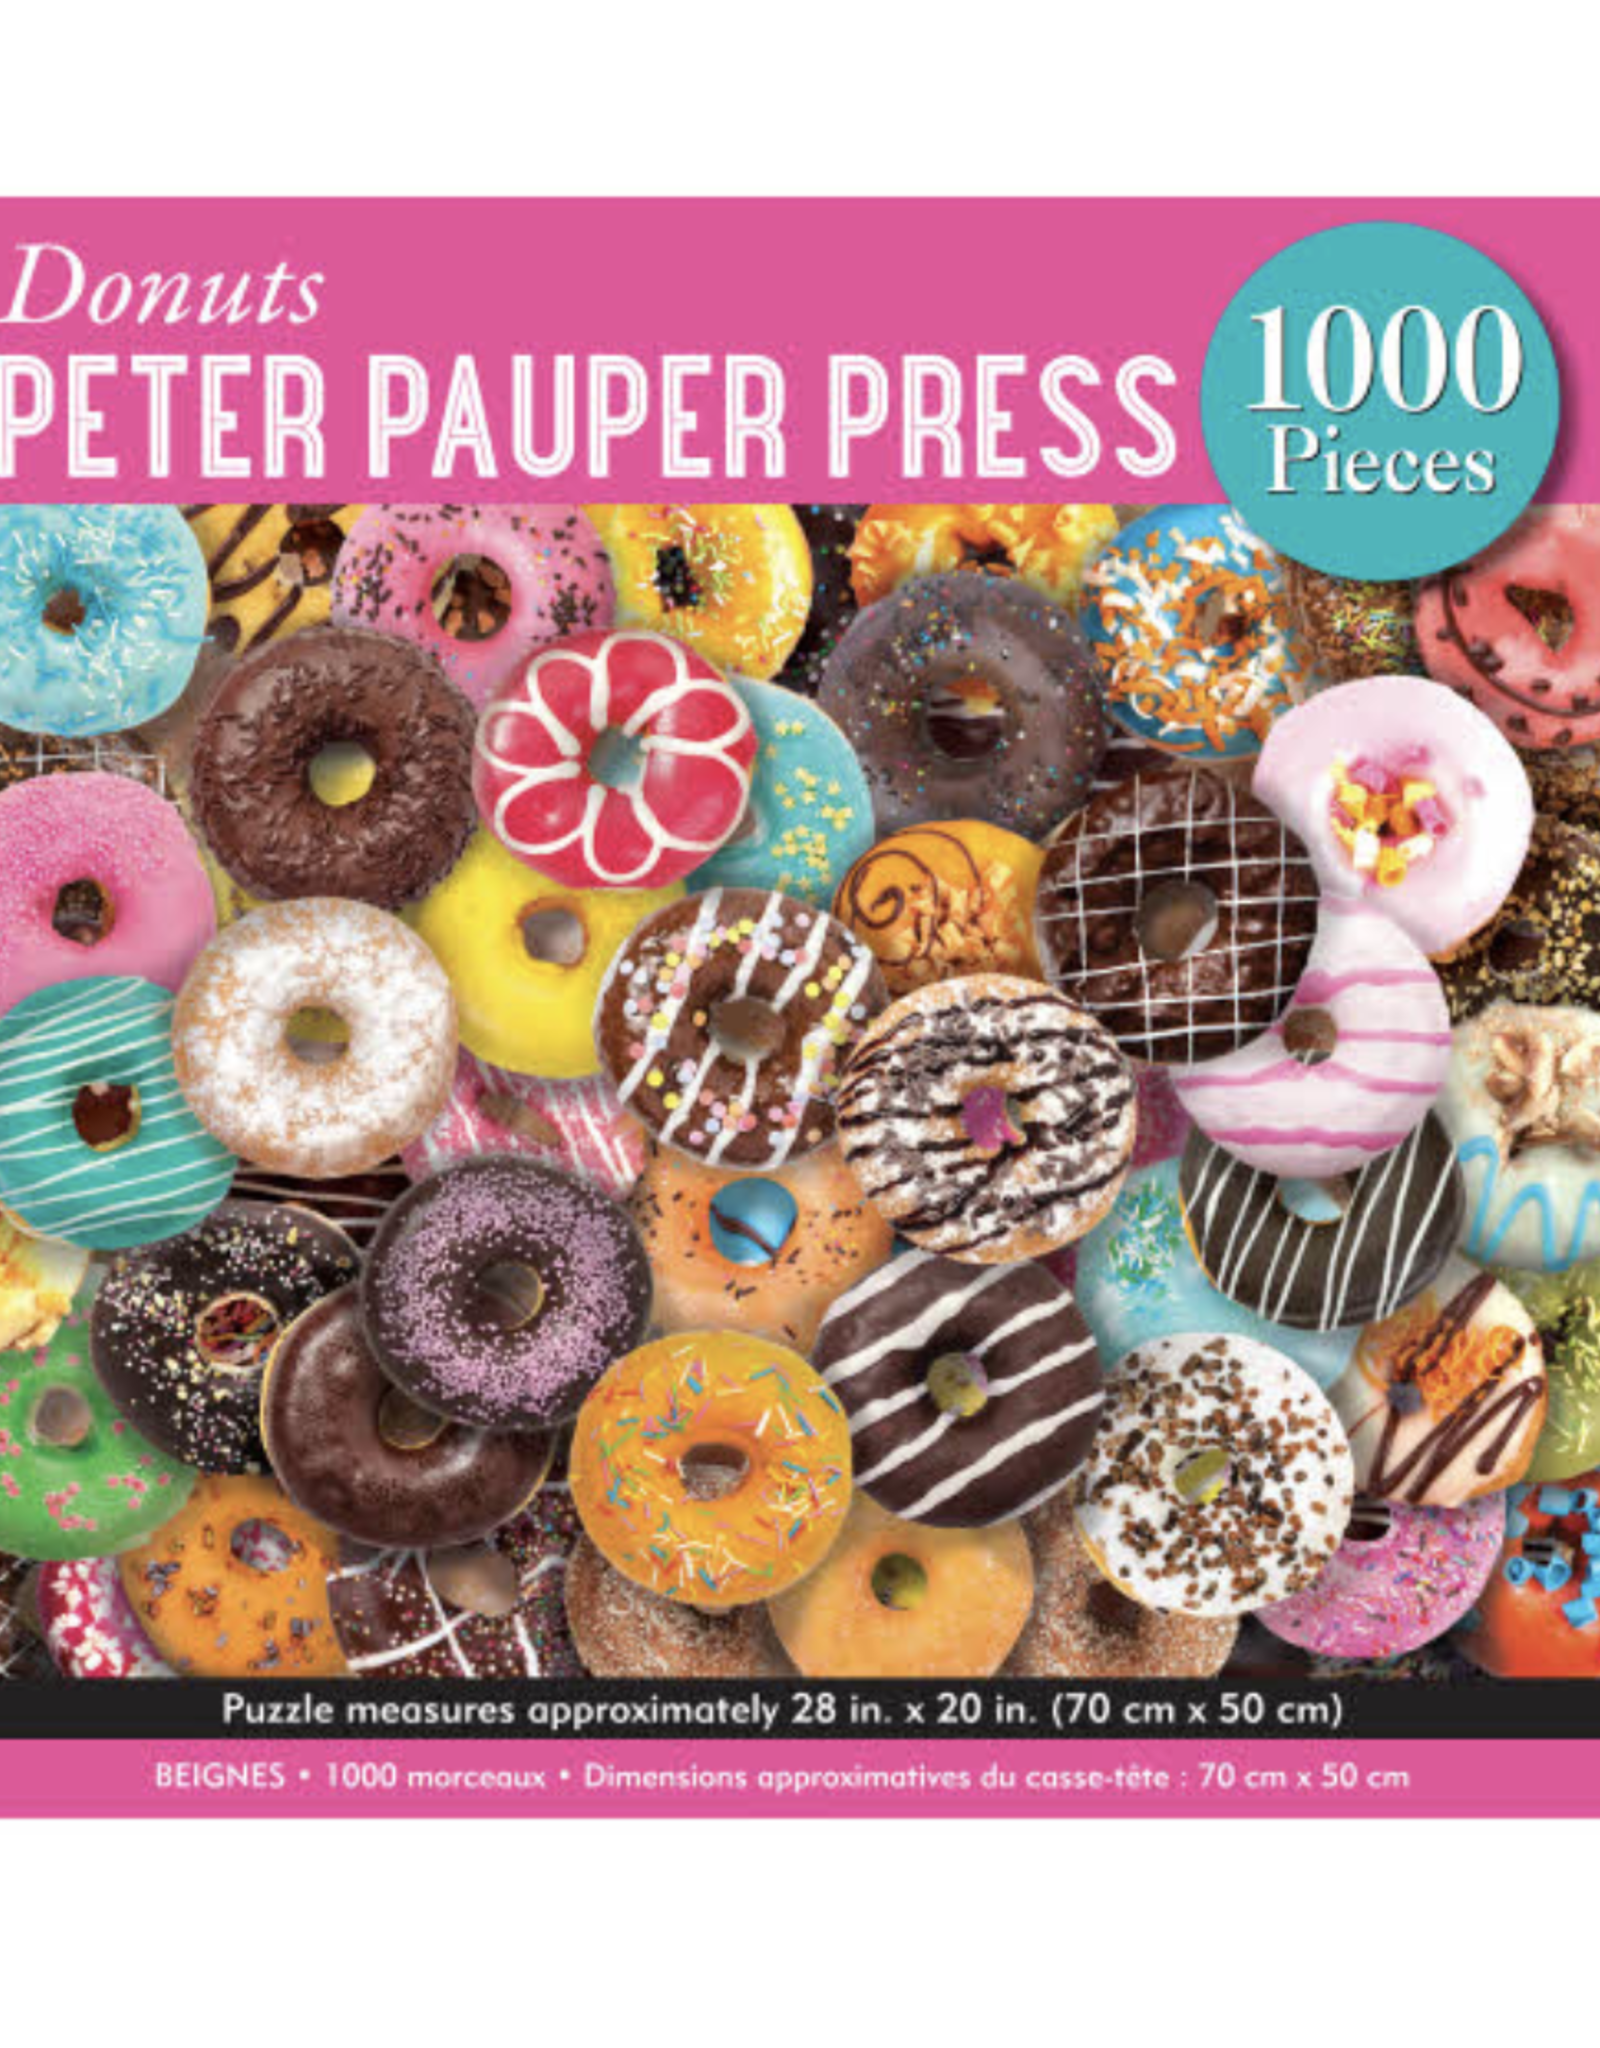 Donuts Puzzle - 1000 Piece